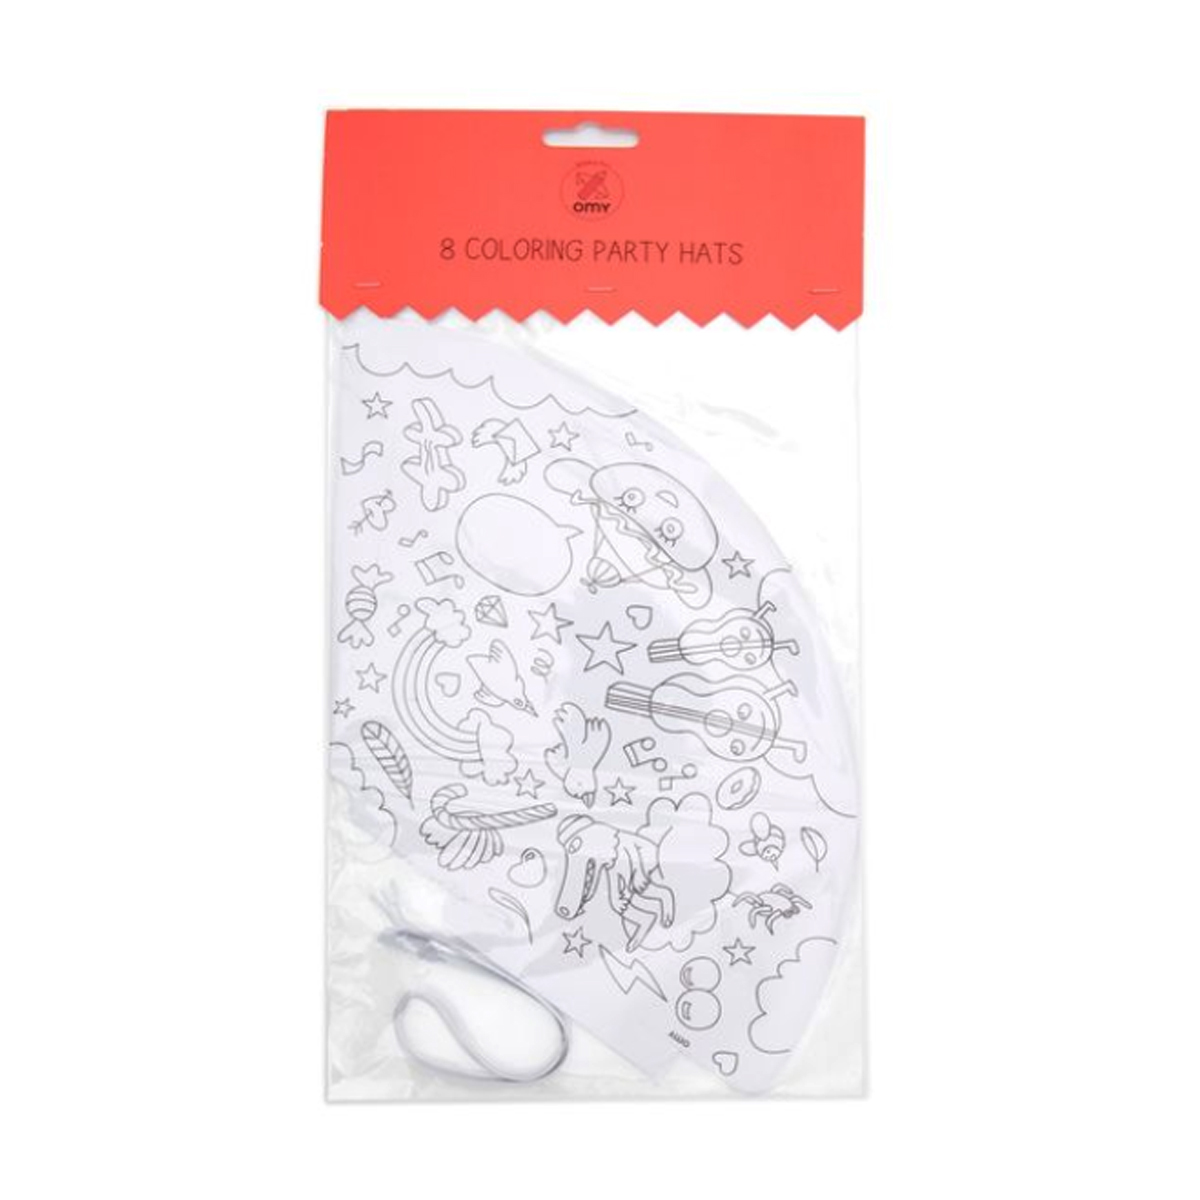 OMY Coloring Party Hat Pack of 8